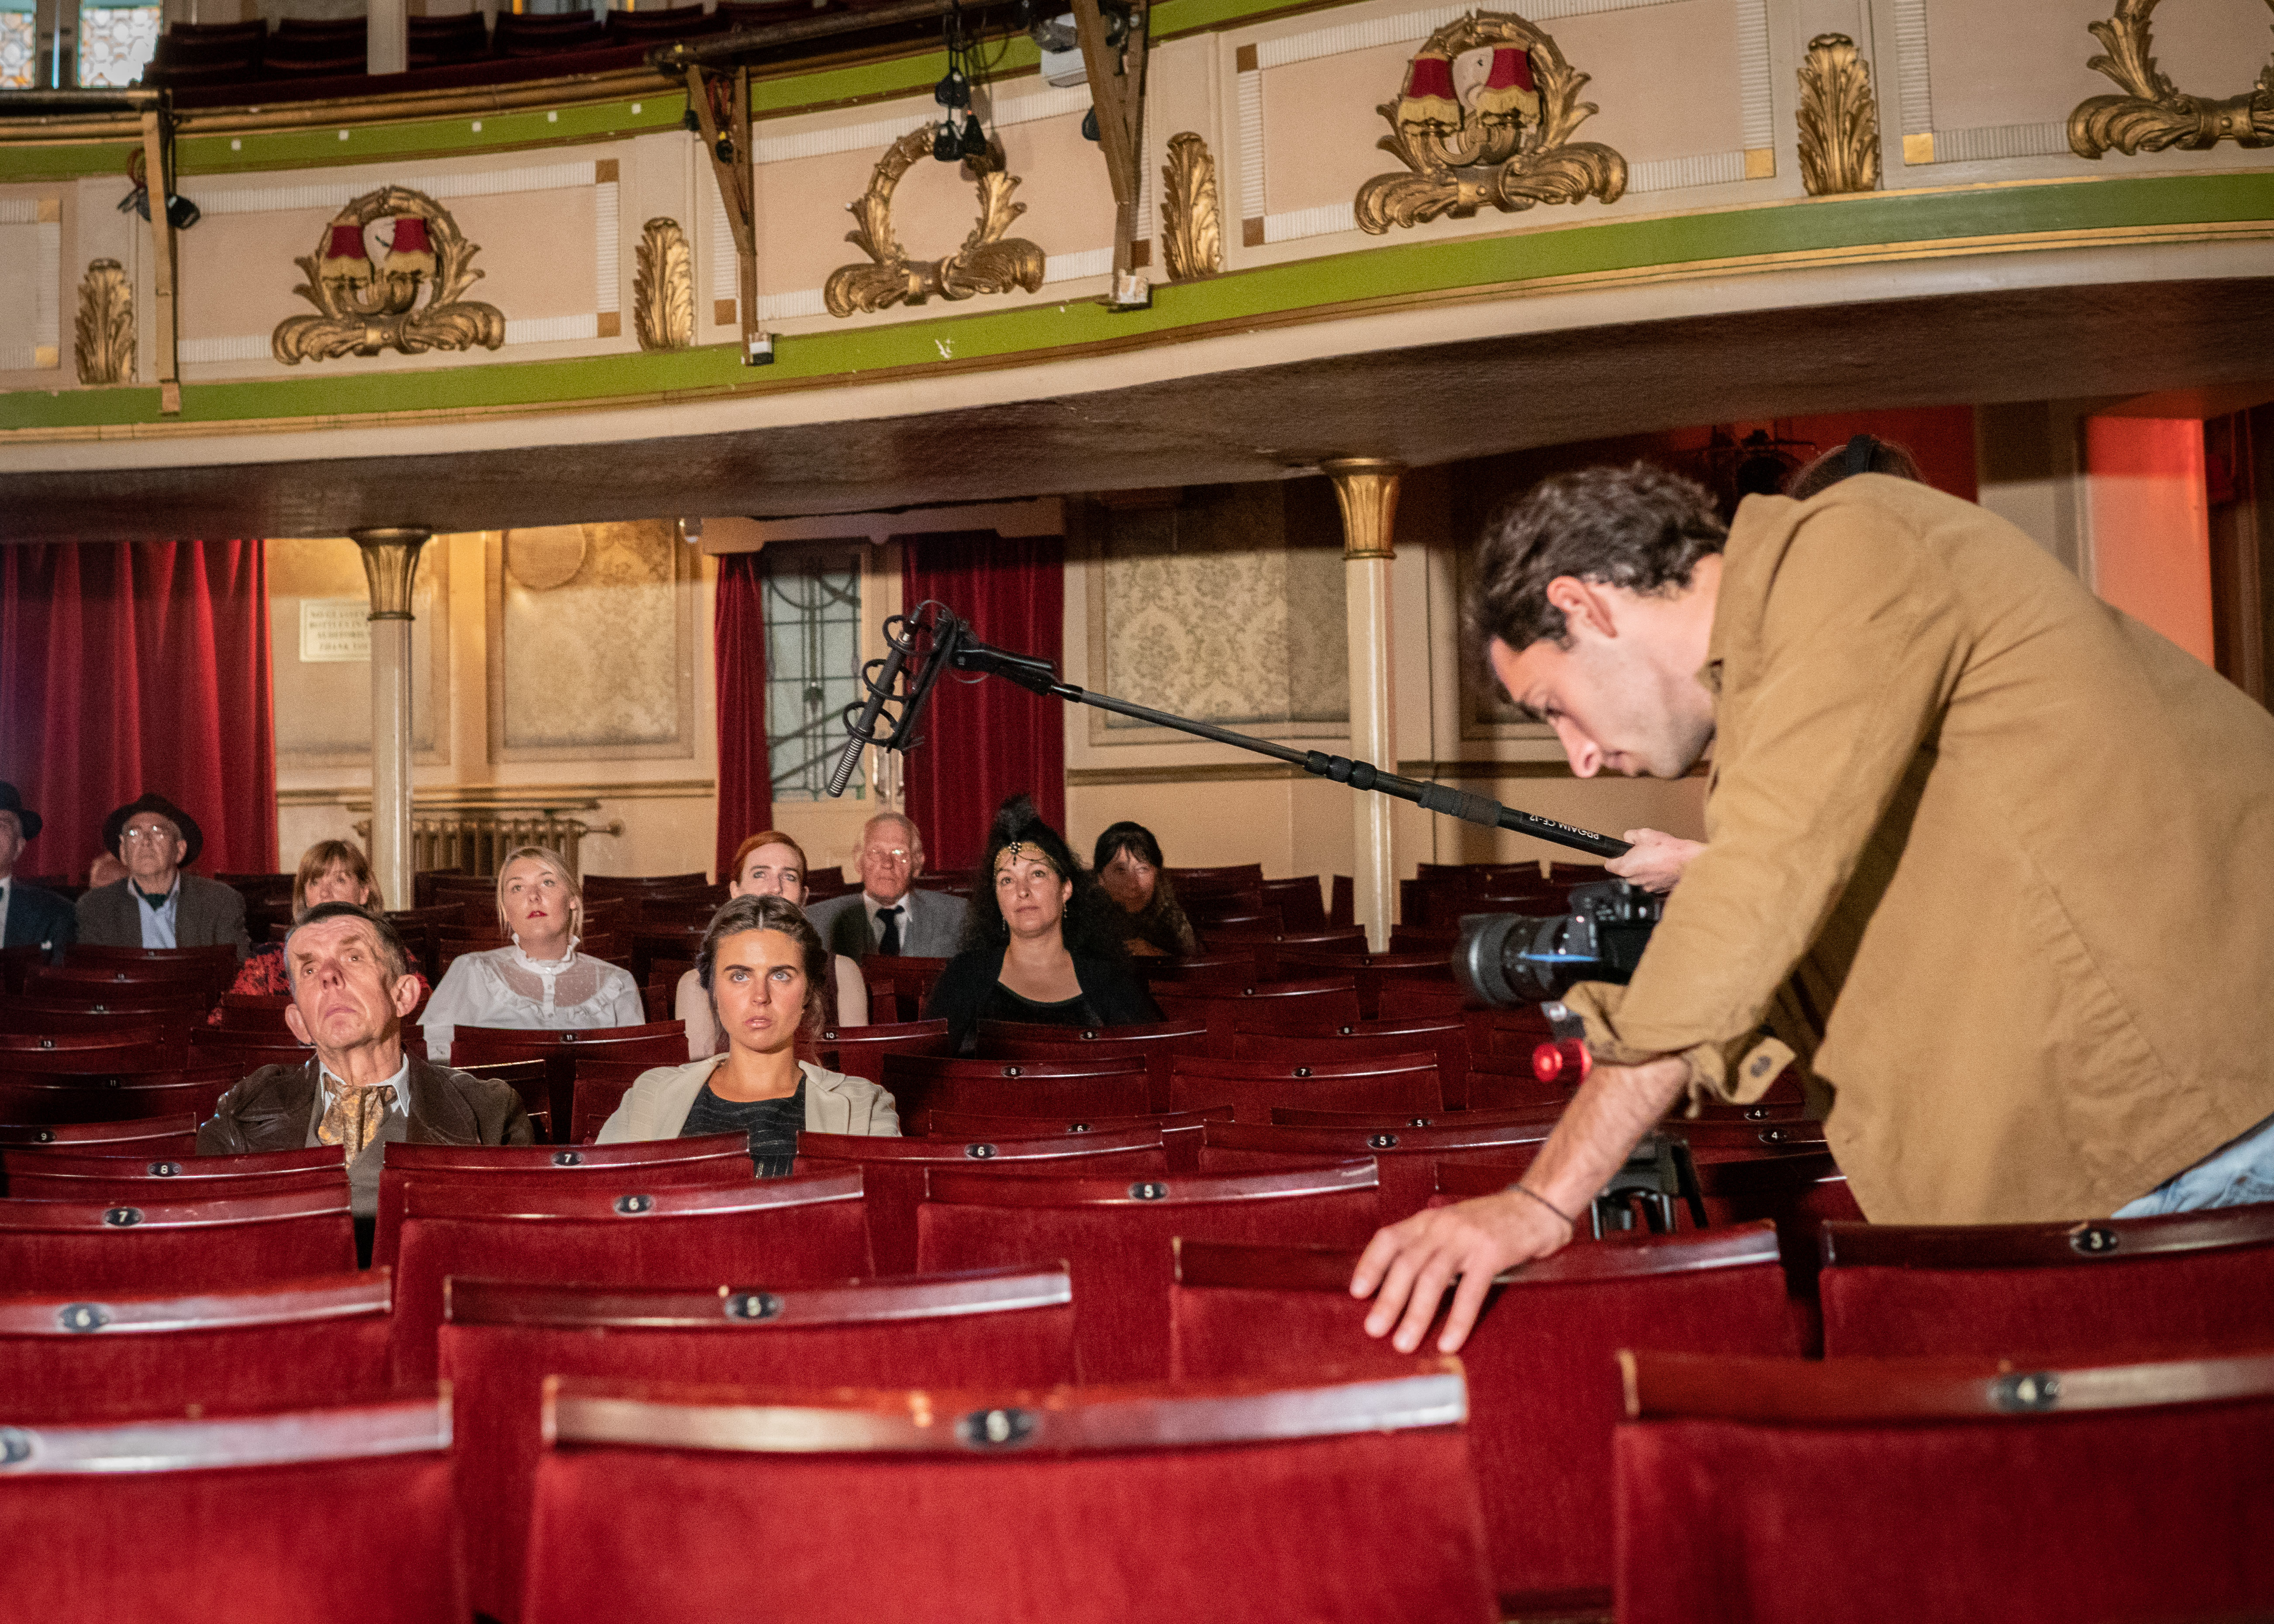 Theatre Royal Opens for our Movie Shoot after Longest Closure in 200 Years